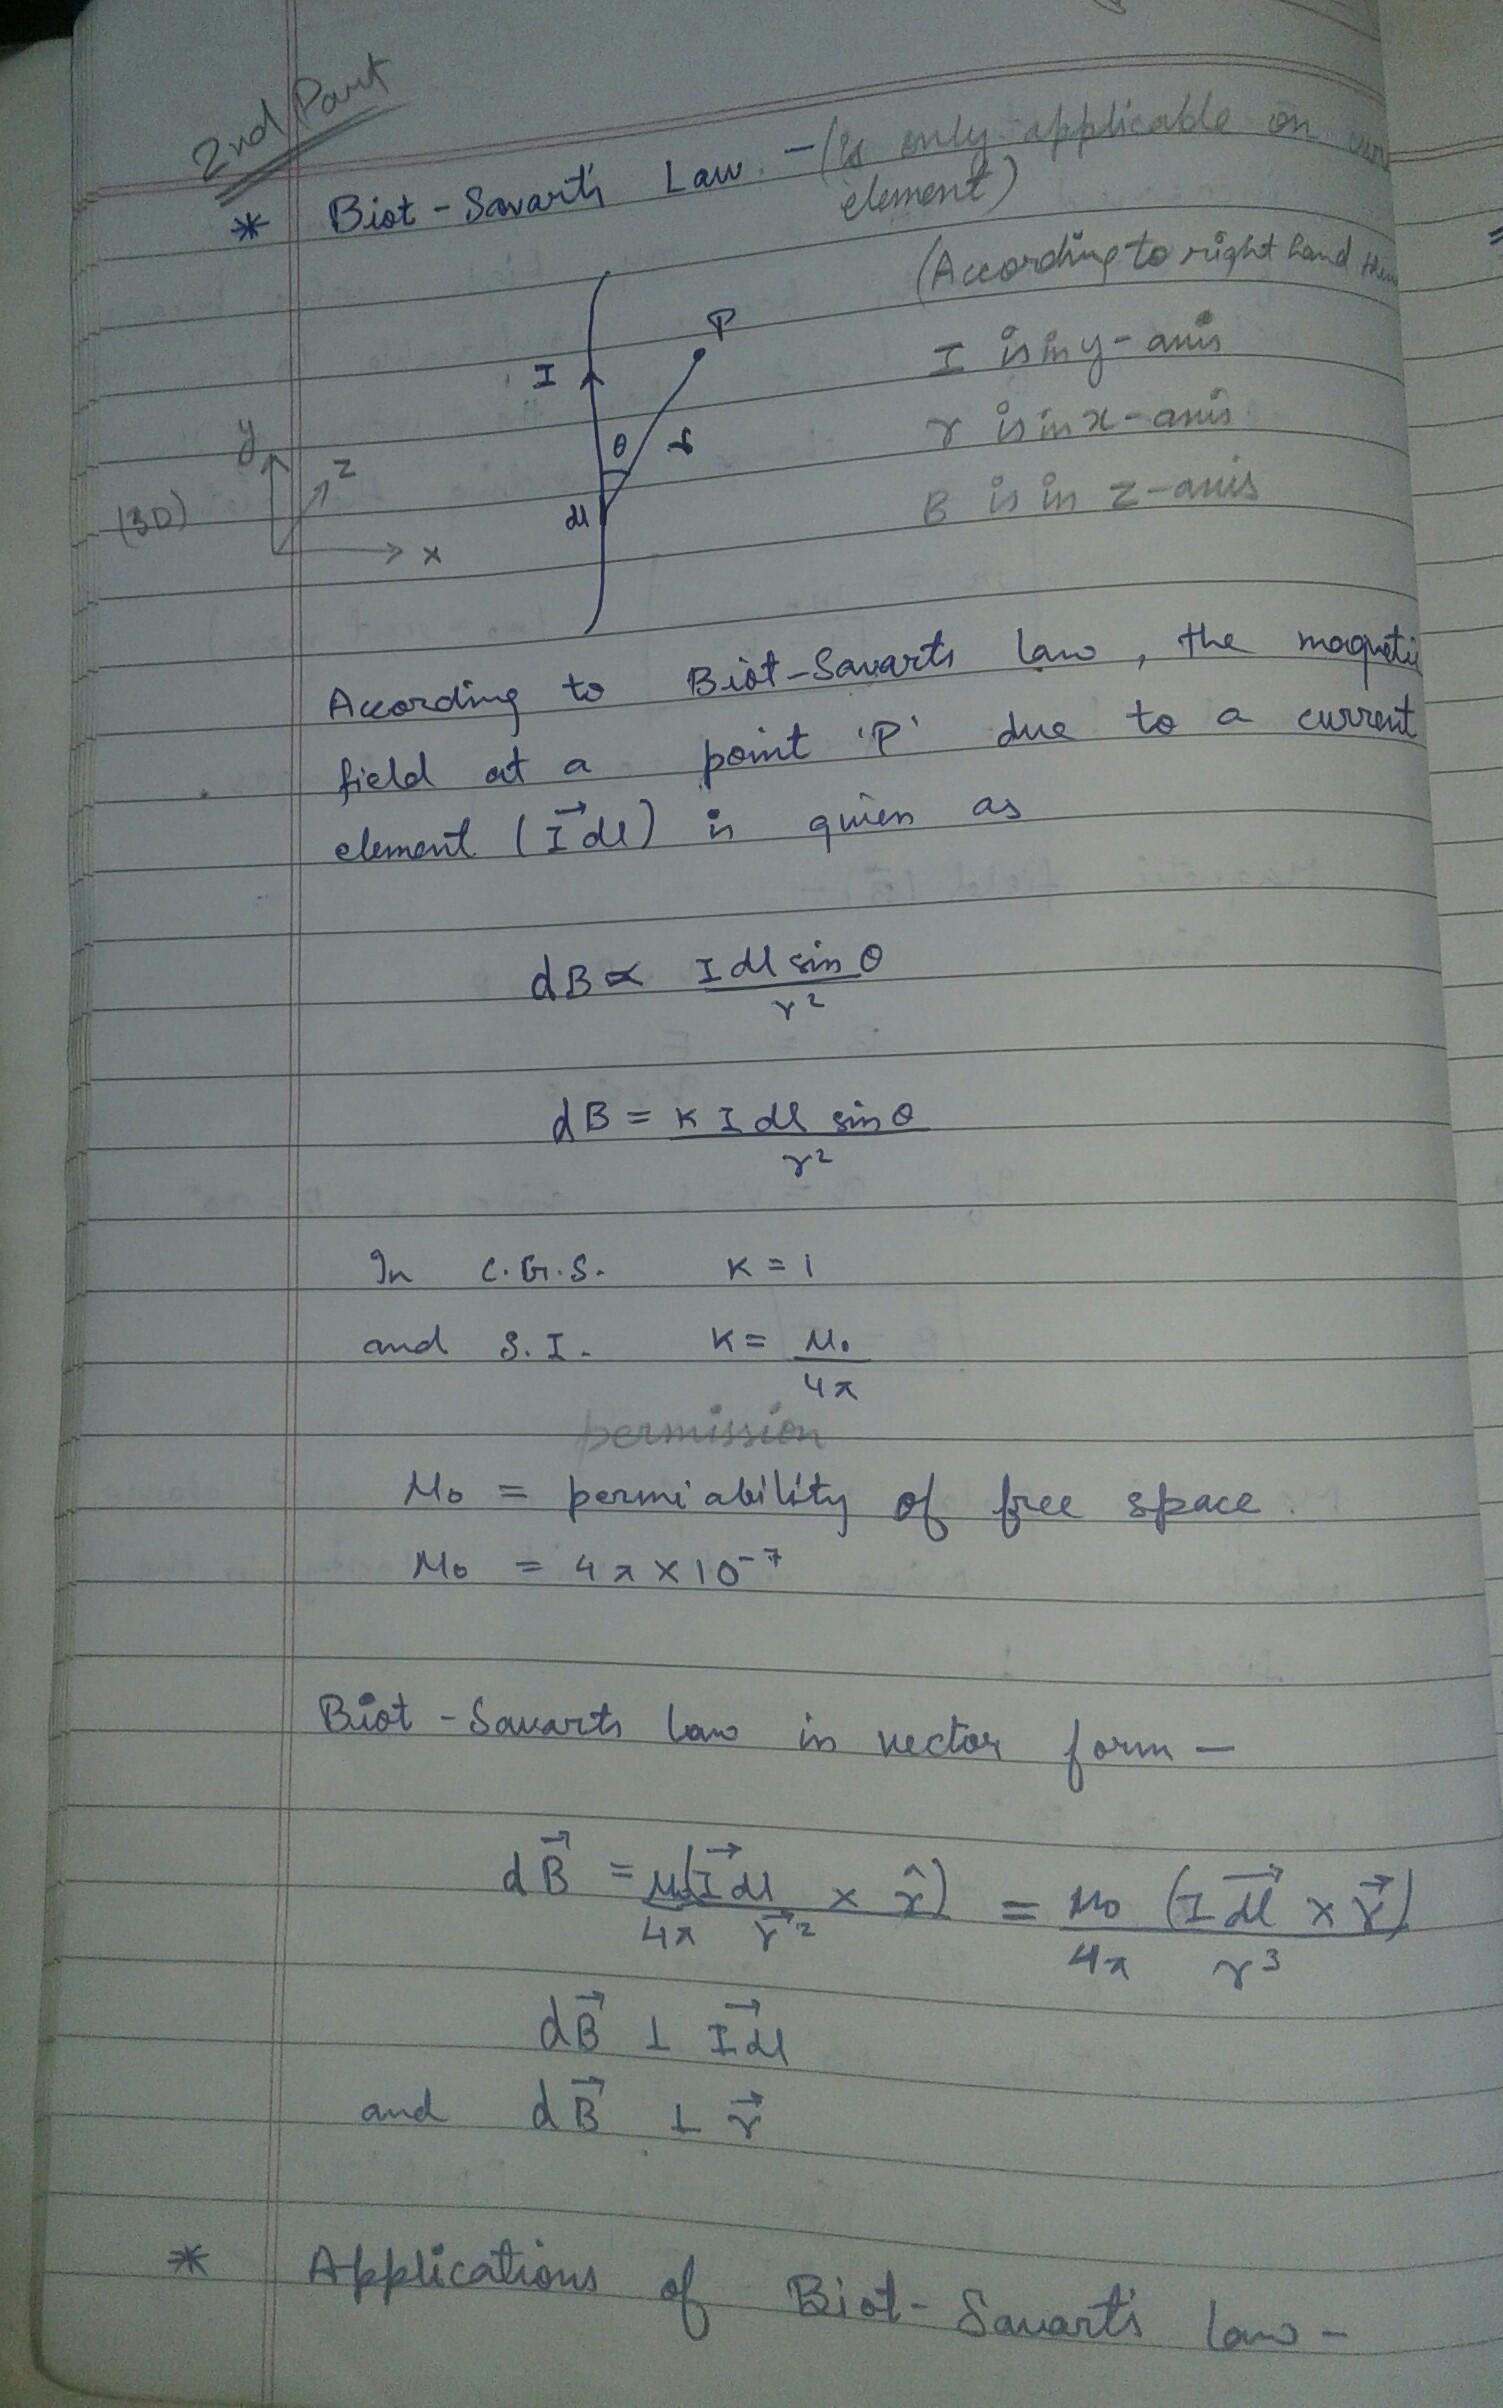 write using biot-savart's law the expression for the